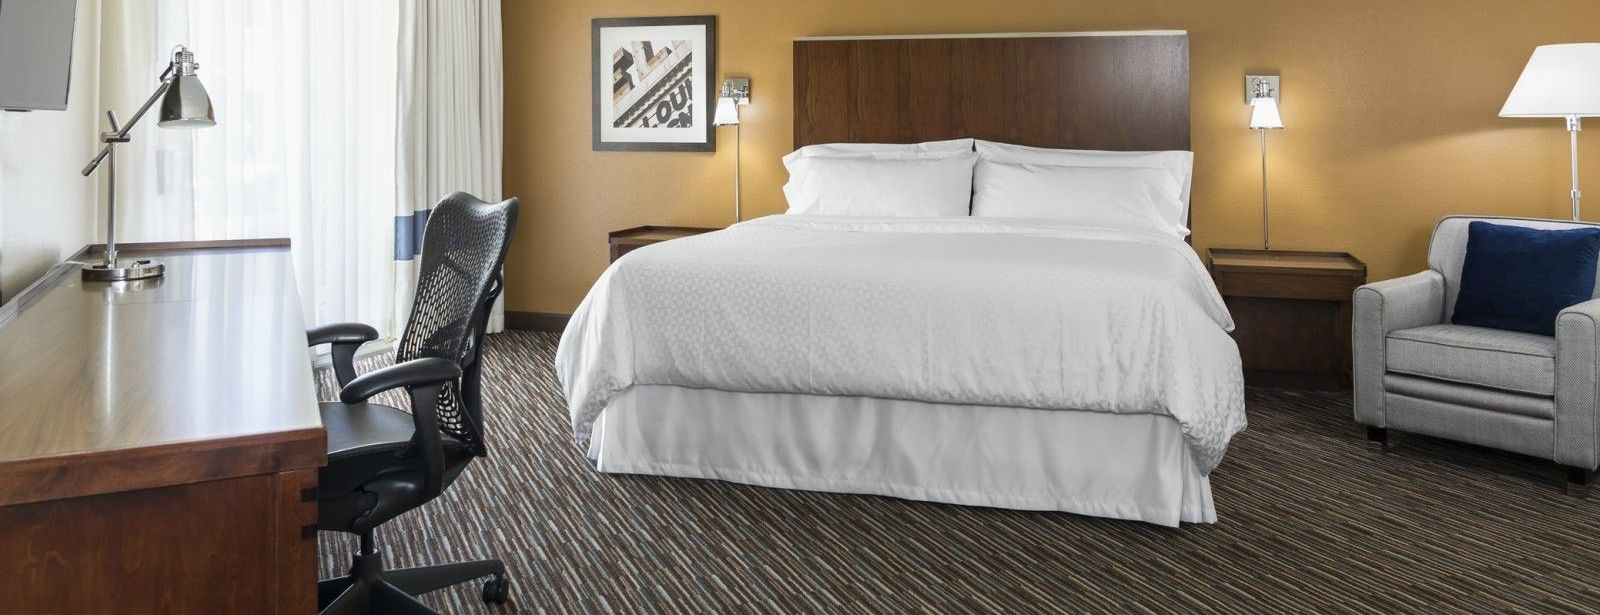 Buffalo Grove Accommodations - Club Floor King Guest Room